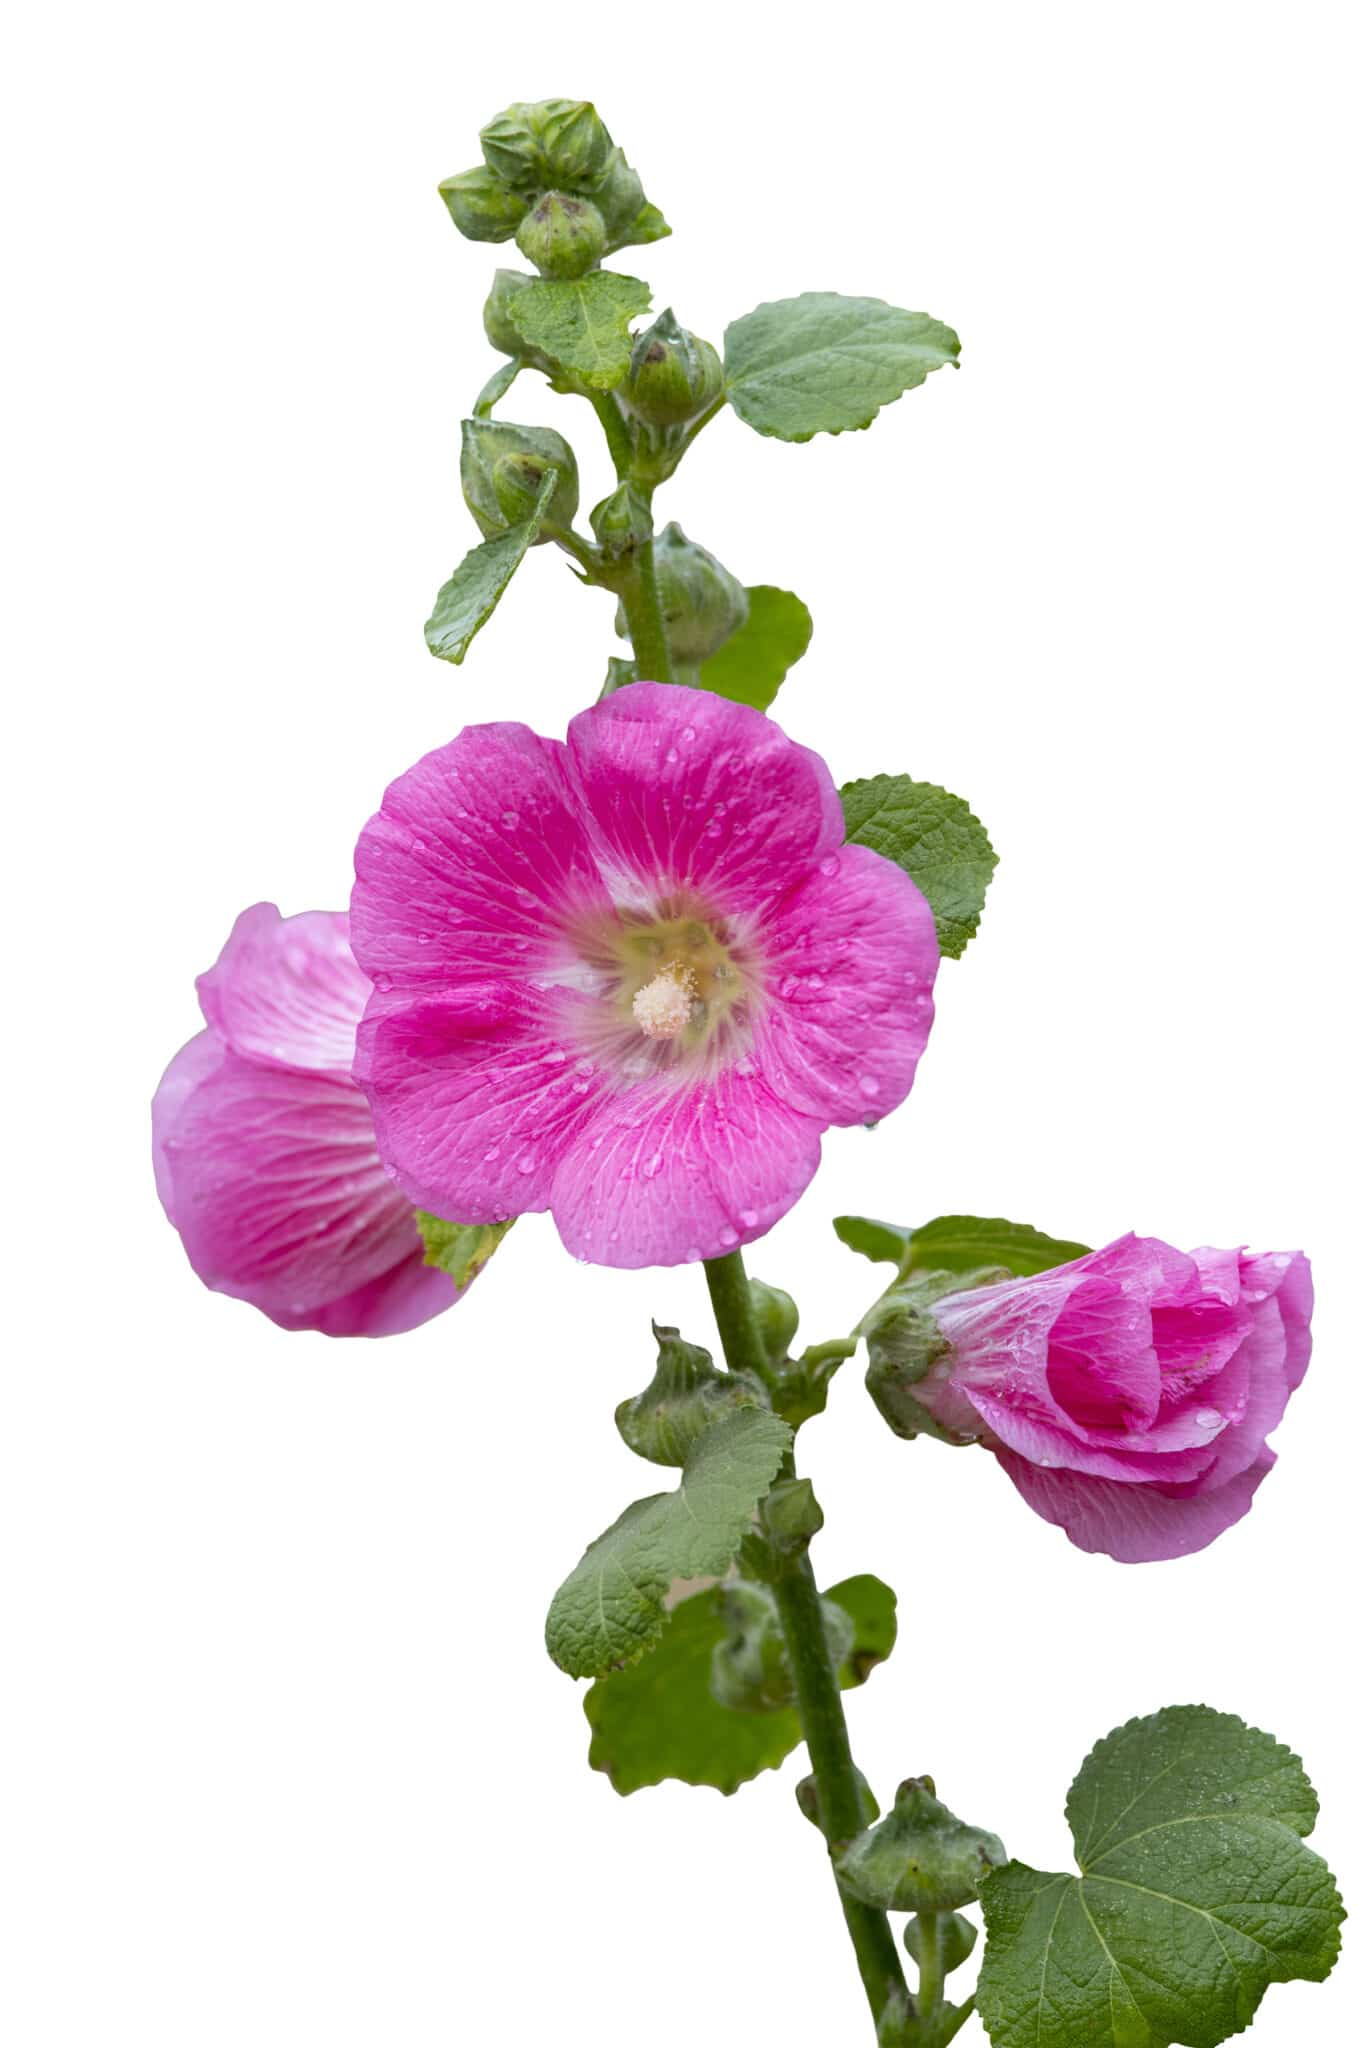 A Hollyhock stem with pink flowers in bloom.